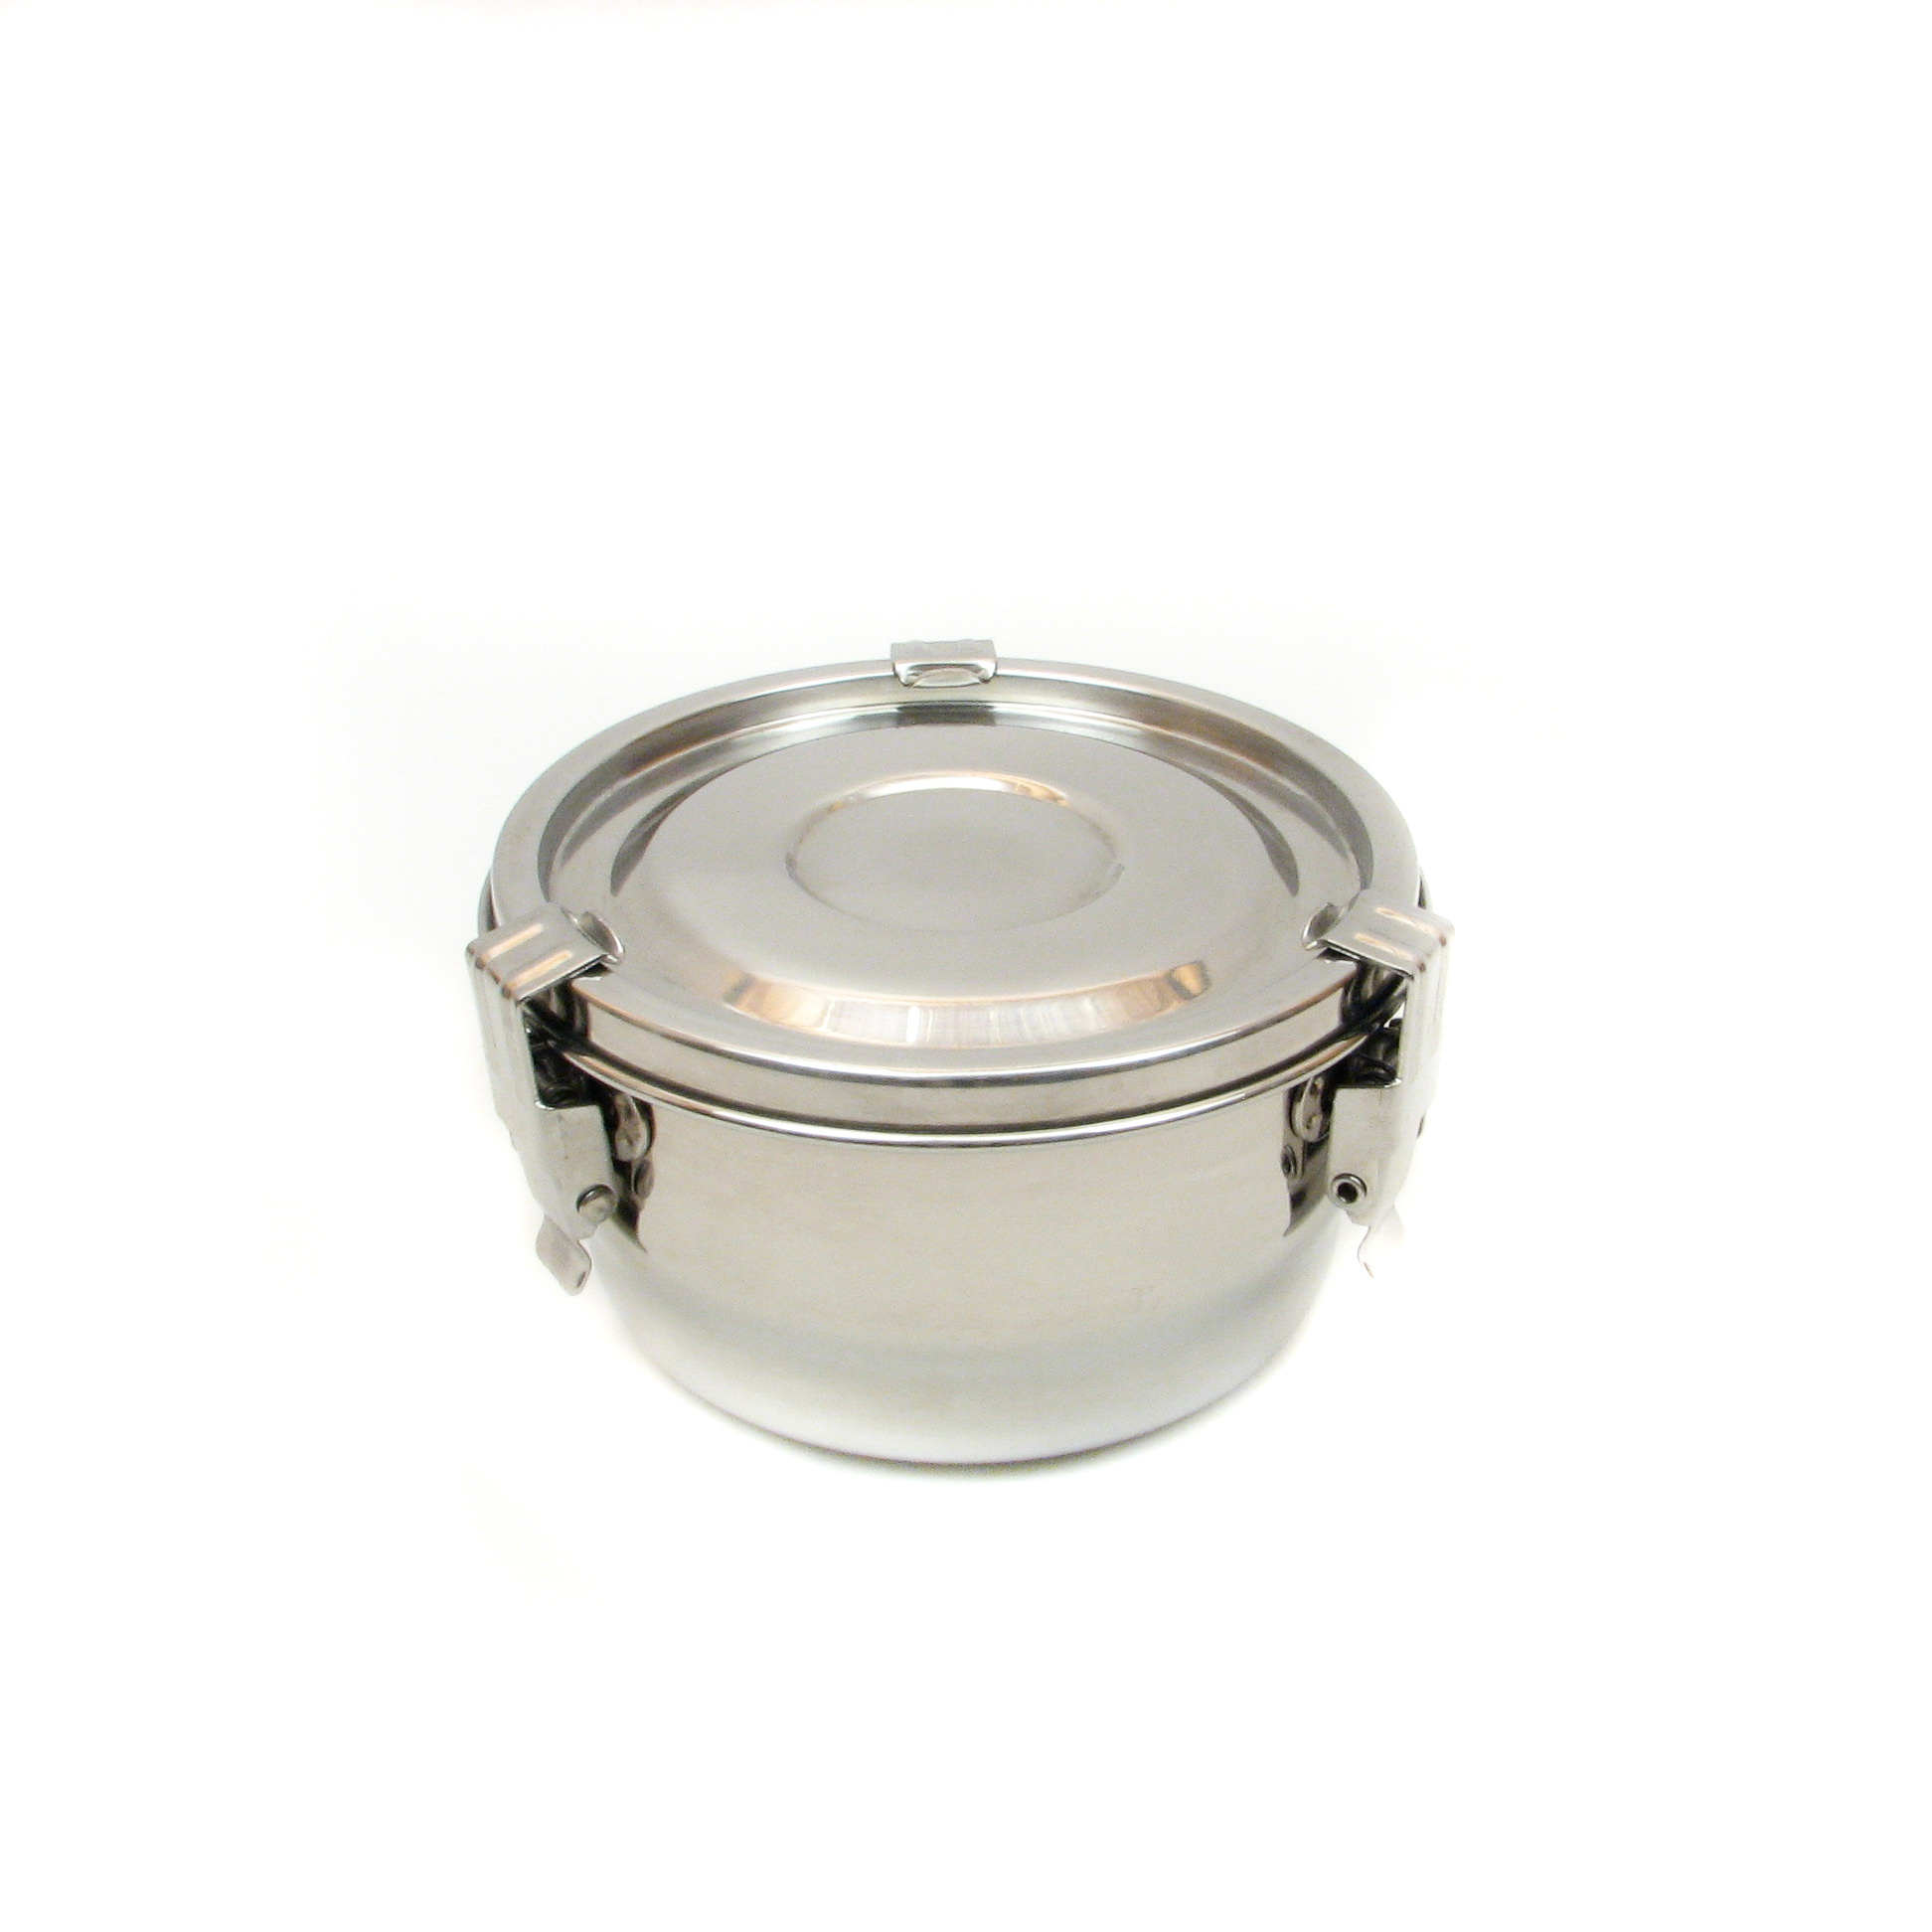 Stainless Steel Airtight Watertight Food Storage Container - 375 mL